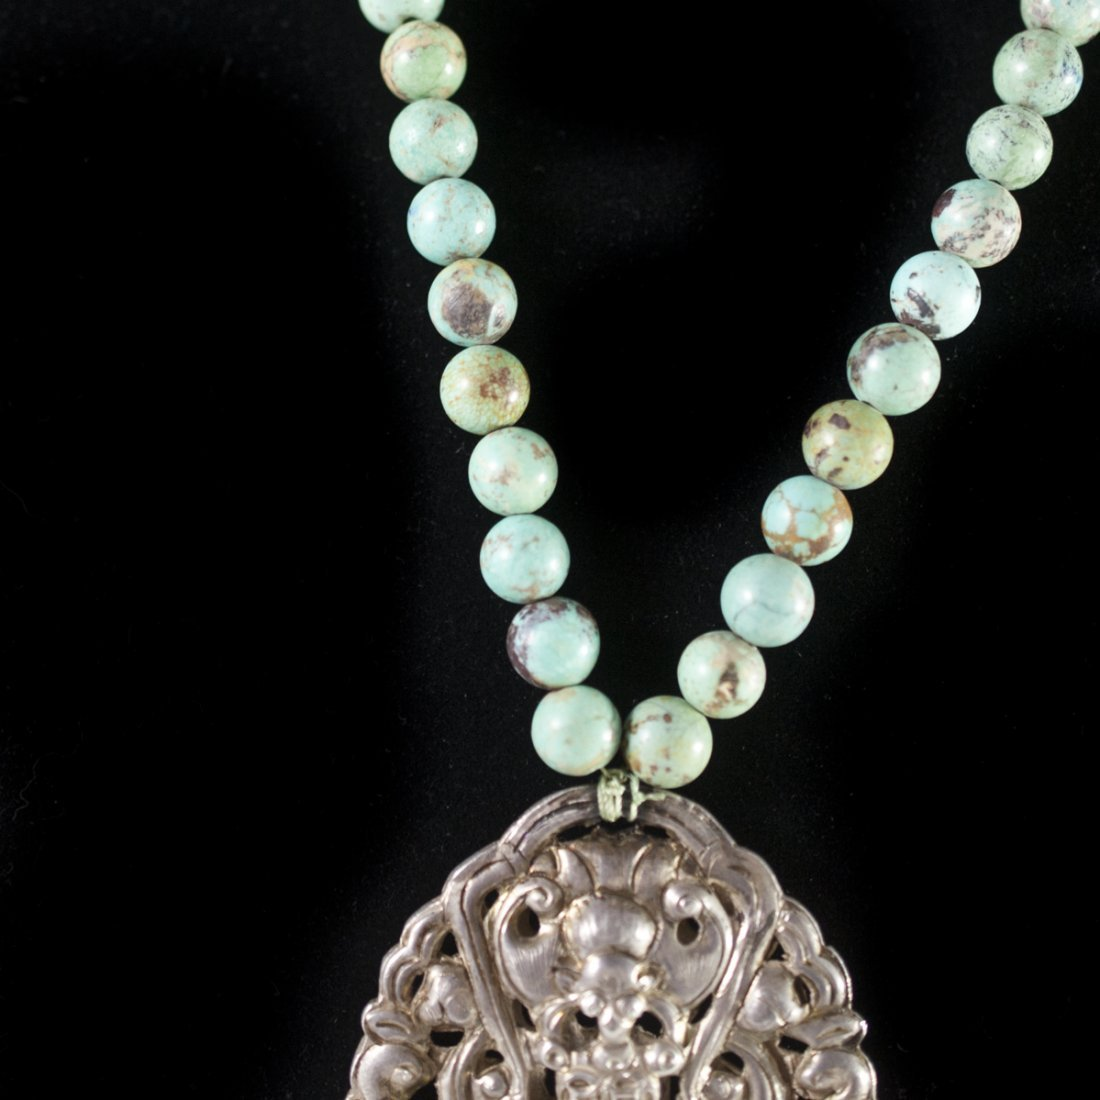 Antique Chinese Silver & Turquoise Necklace - 4